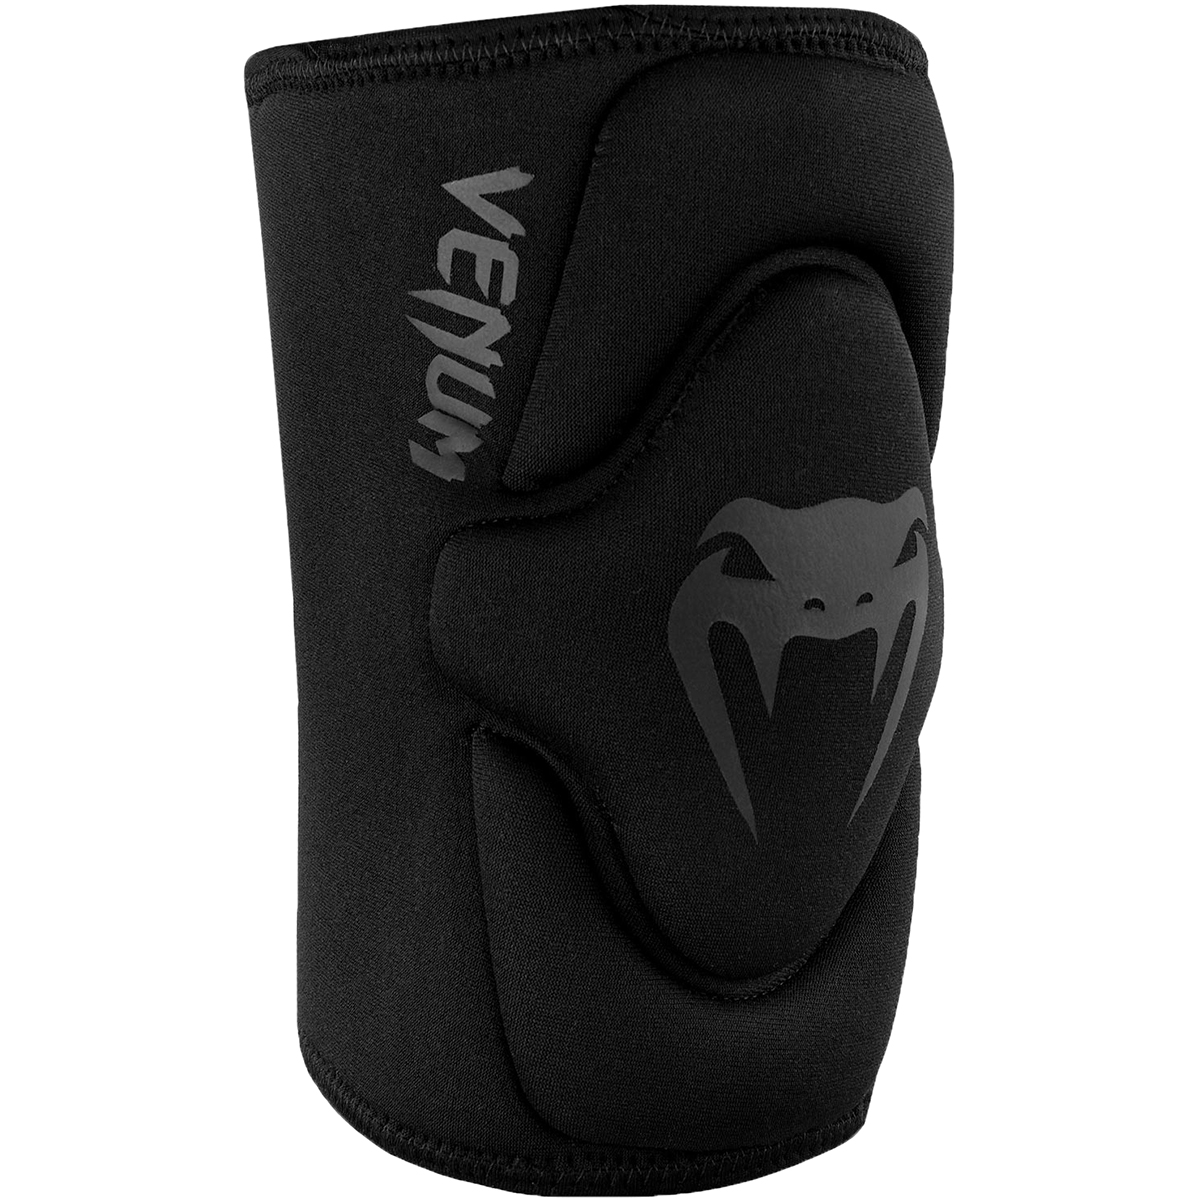 thumbnail 3 - Venum-Kontact-Gel-Shock-System-Protective-MMA-Training-Knee-Pads